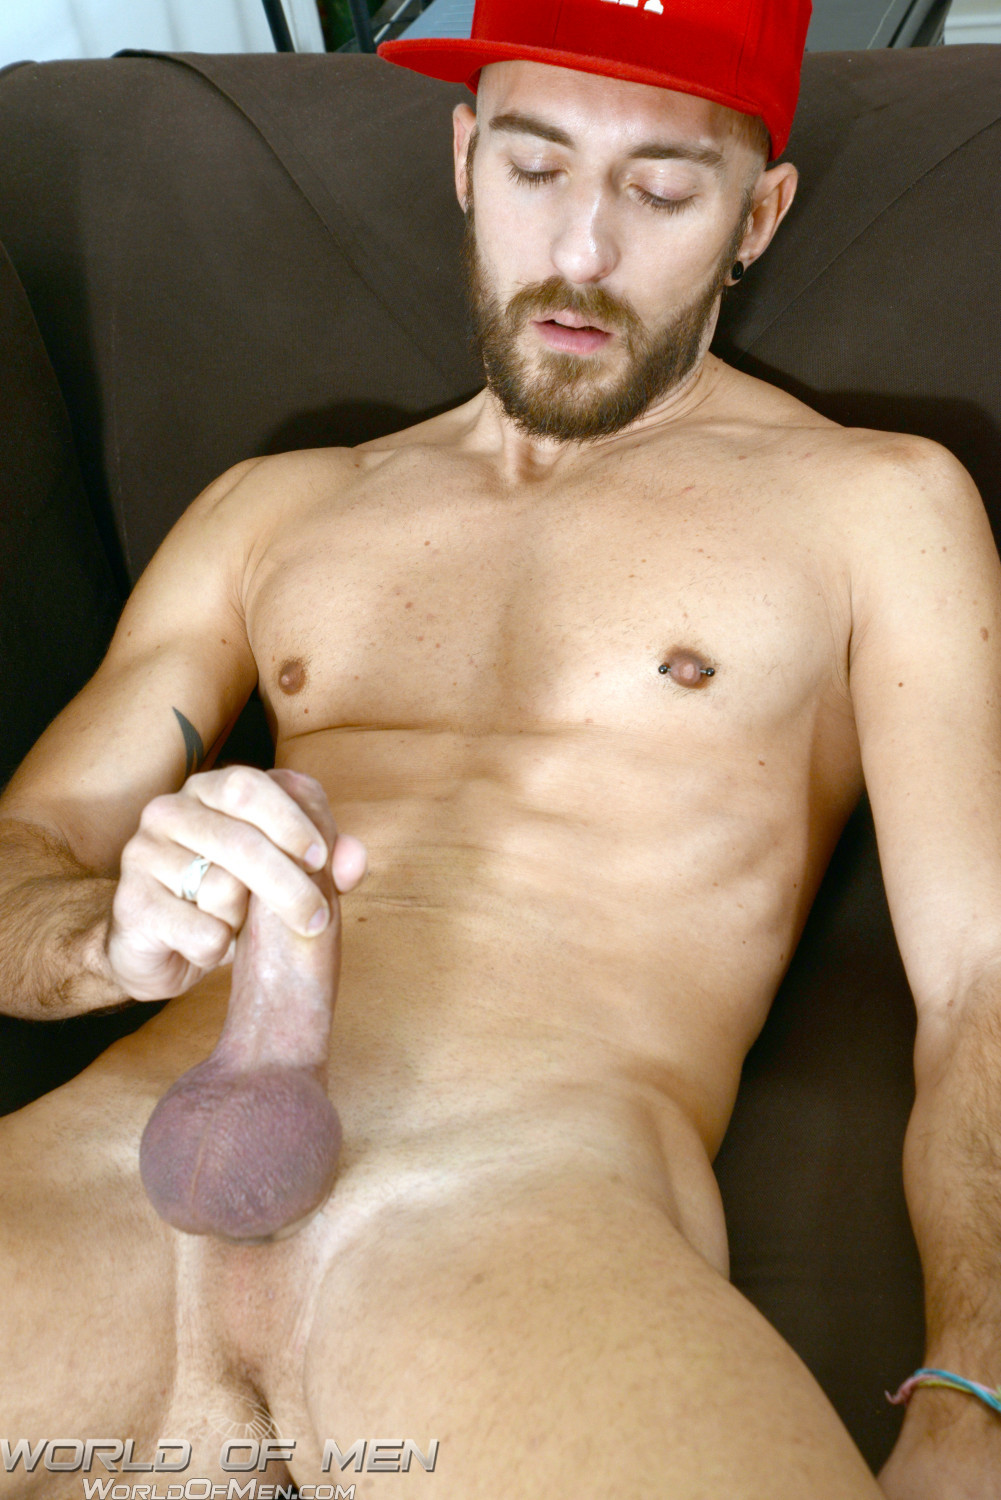 World of Men Enzo DiKarina french guy with a huge uncut cock massive cum load 09 Amateur French Hustler With Huge Uncut Cock Blasts Cum All Over